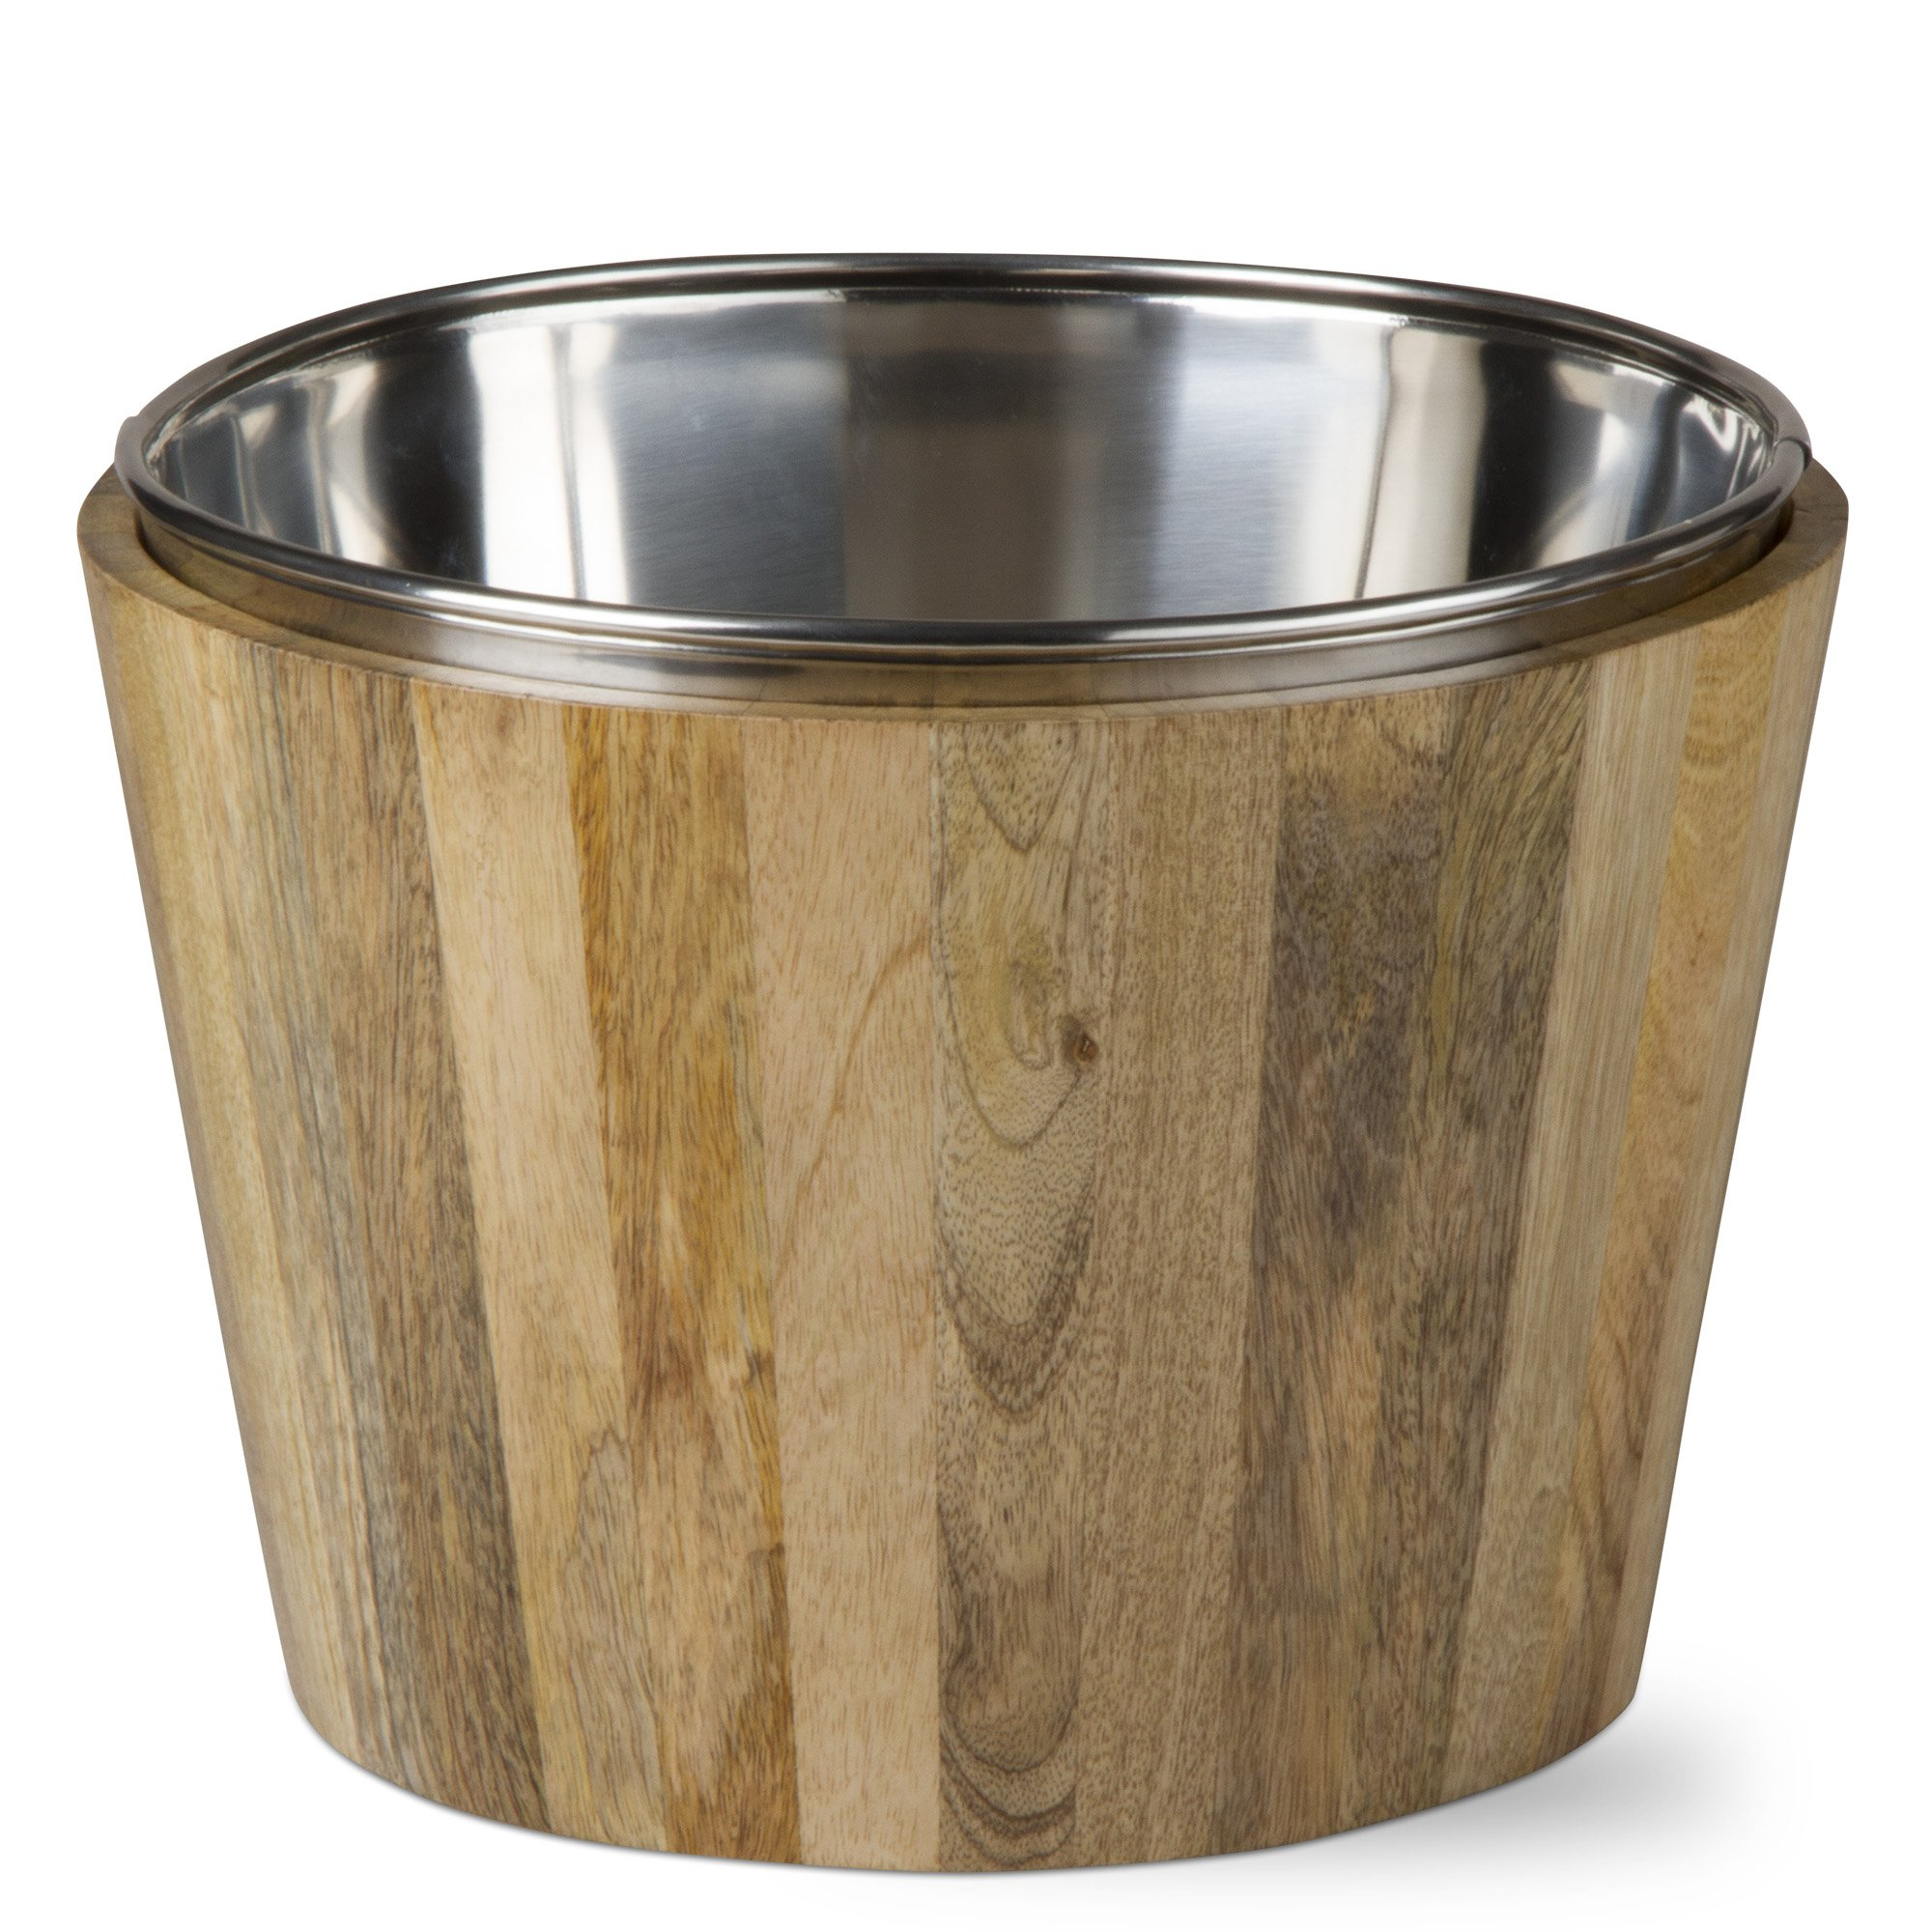 tag - Malaya Wine Bucket, Natural Mango Wood Barware Ideal for Parties and Events, Natural (9.25'' x 13'' Dia.) by tag